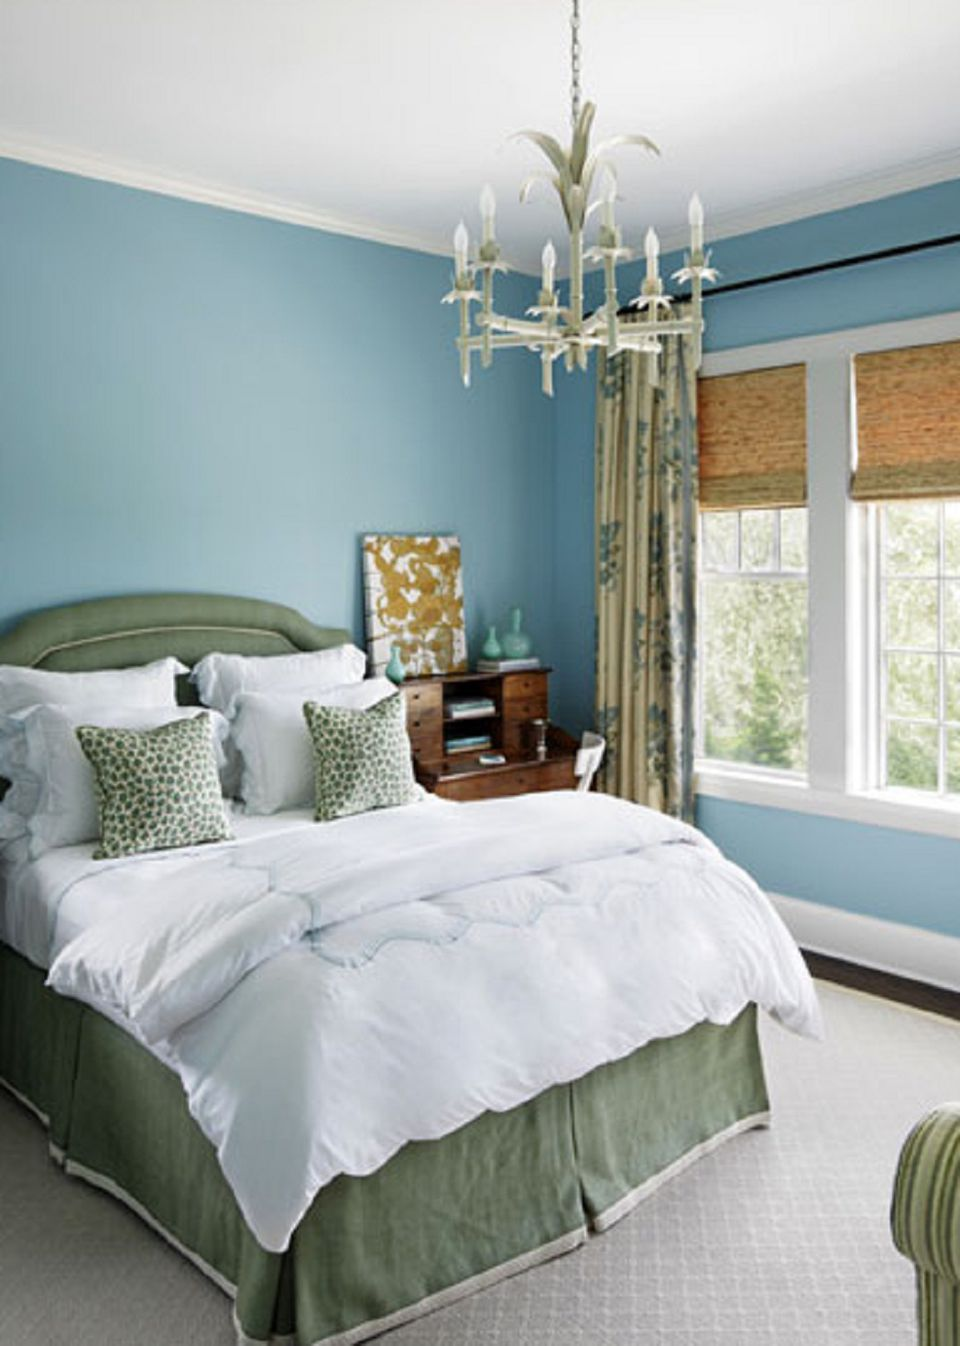 Interior Pretty Bedrooms Ideas 25 stunning blue bedroom ideas walls in pretty bedroom